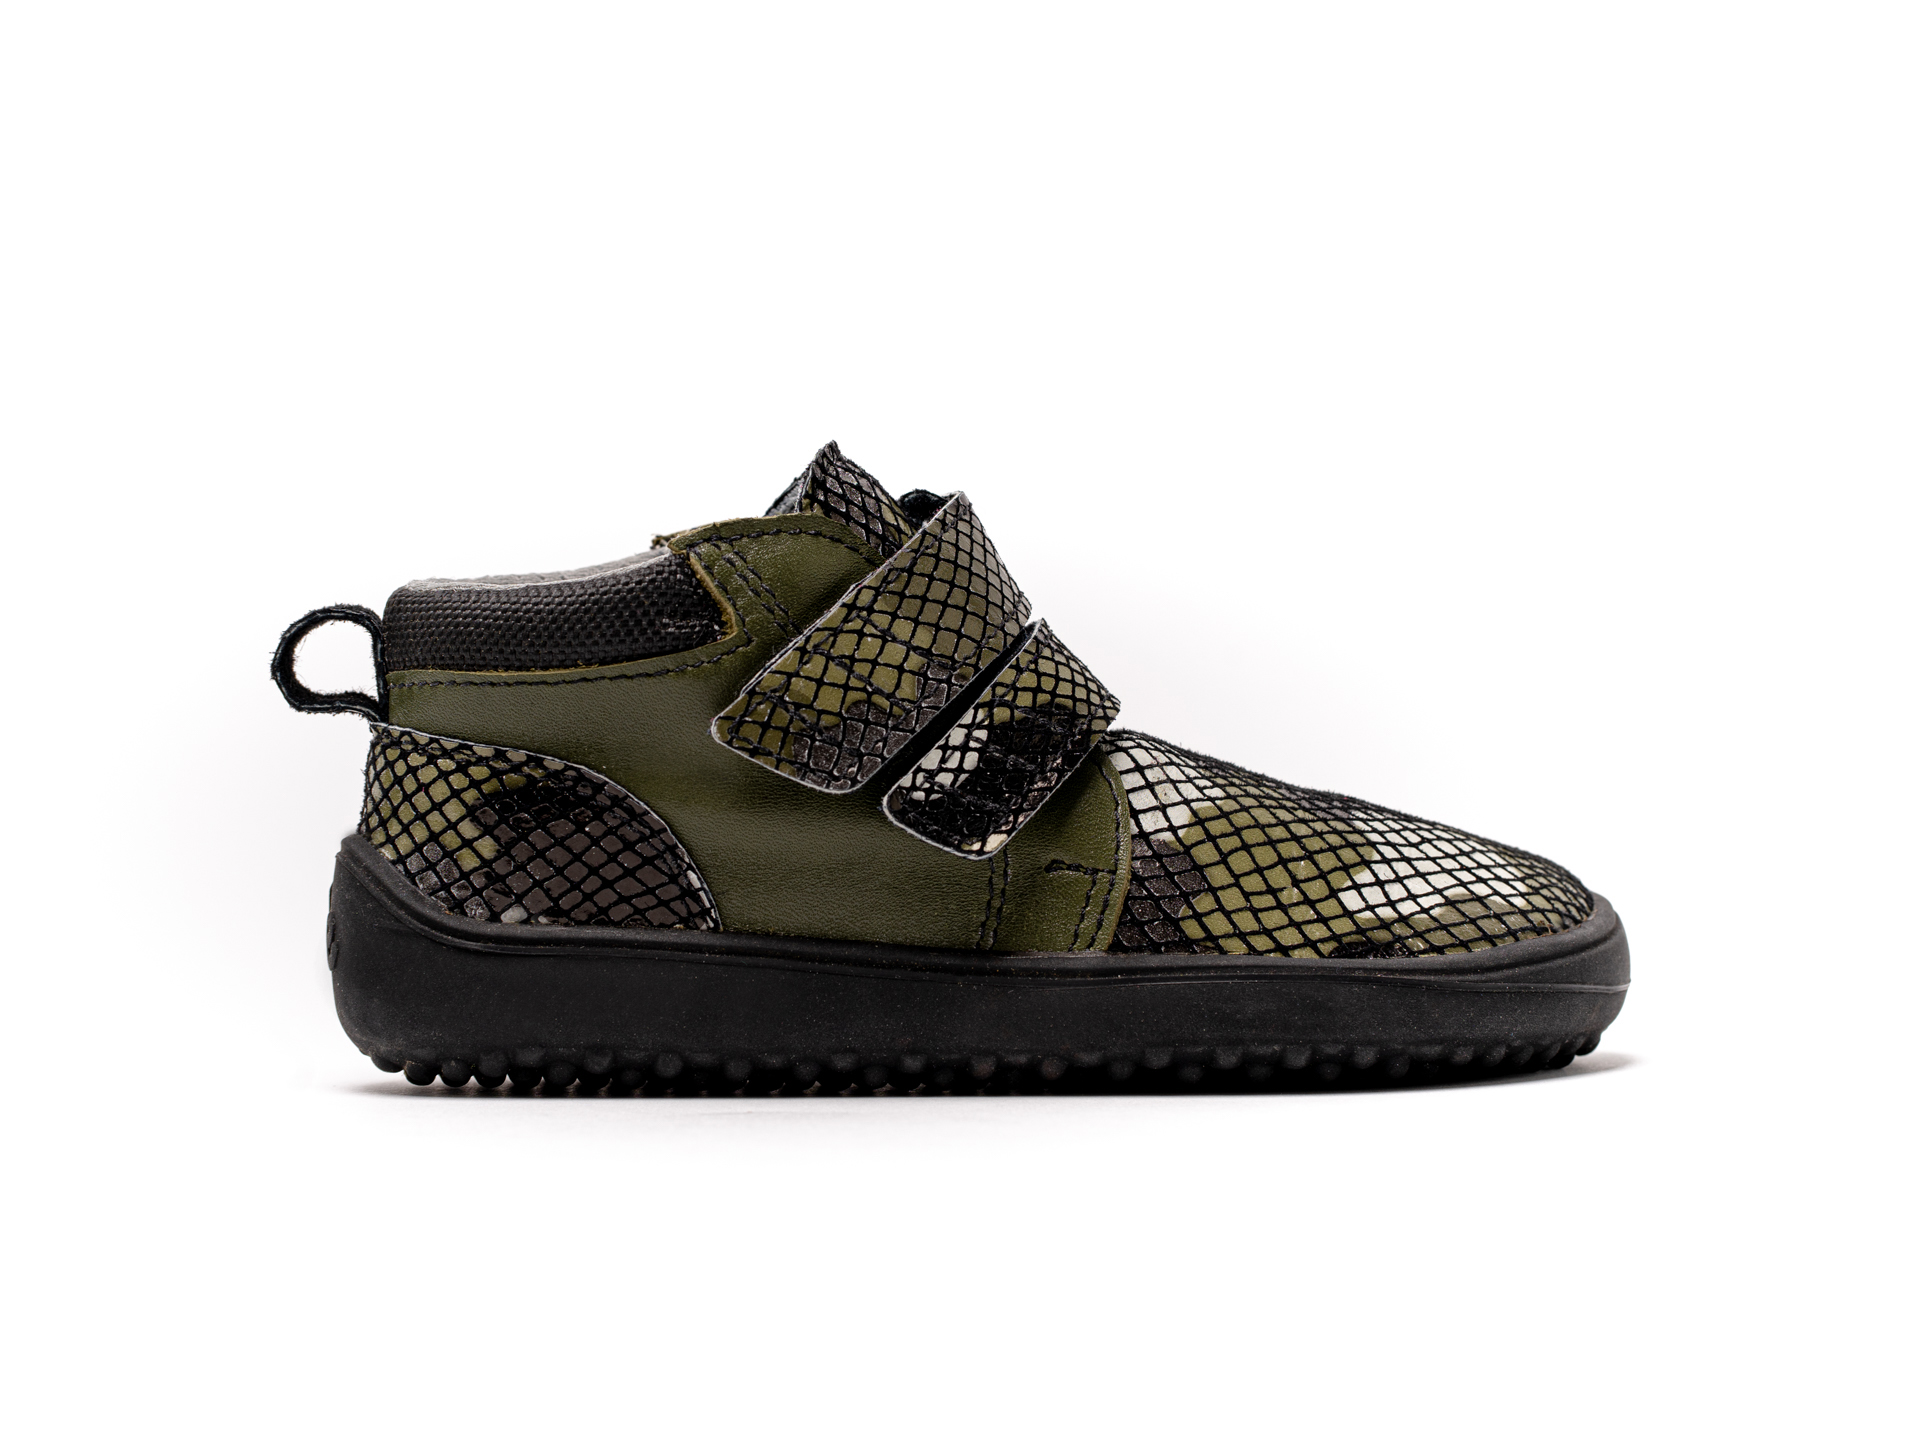 Kinder Barfussschuhe Be Lenka Play - Army 35